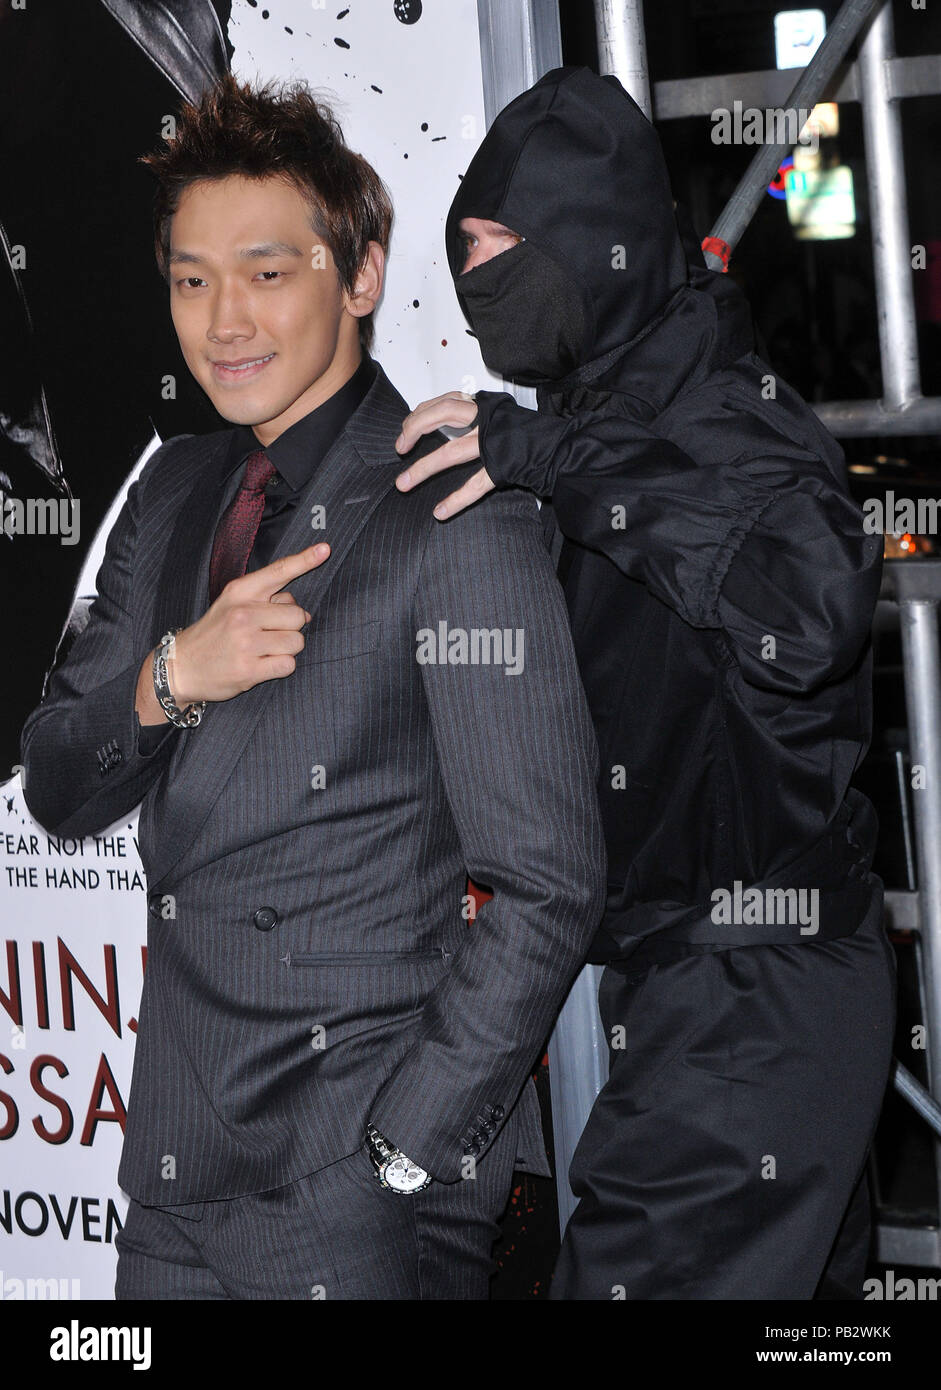 Rain Raizo   - NINJA ASSASSIN Premiere at GraumanÕs Chinese Theatre In Los Angeles.Rain Raizo_29 Red Carpet Event, Vertical, USA, Film Industry, Celebrities,  Photography, Bestof, Arts Culture and Entertainment, Topix Celebrities fashion /  Vertical, Best of, Event in Hollywood Life - California,  Red Carpet and backstage, USA, Film Industry, Celebrities,  movie celebrities, TV celebrities, Music celebrities, Photography, Bestof, Arts Culture and Entertainment,  Topix, vertical, one person,, from the years , 2006 to 2009, inquiry tsuni@Gamma-USA.com - Three Quarters - Stock Image